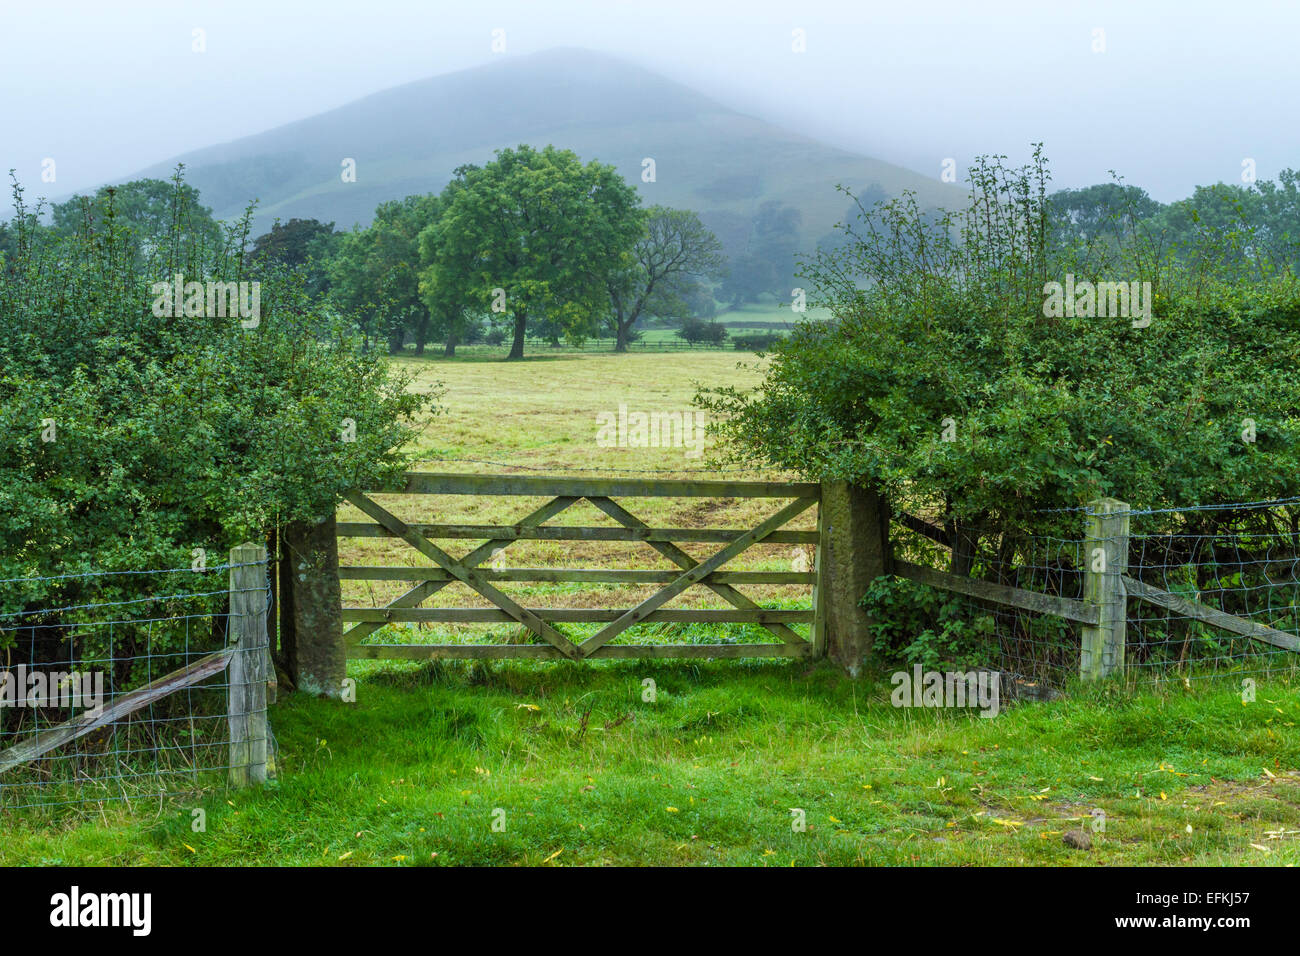 Dull weather with low cloud covering hills in the countryside. Vale of Edale, Derbyshire, Peak District, England, - Stock Image